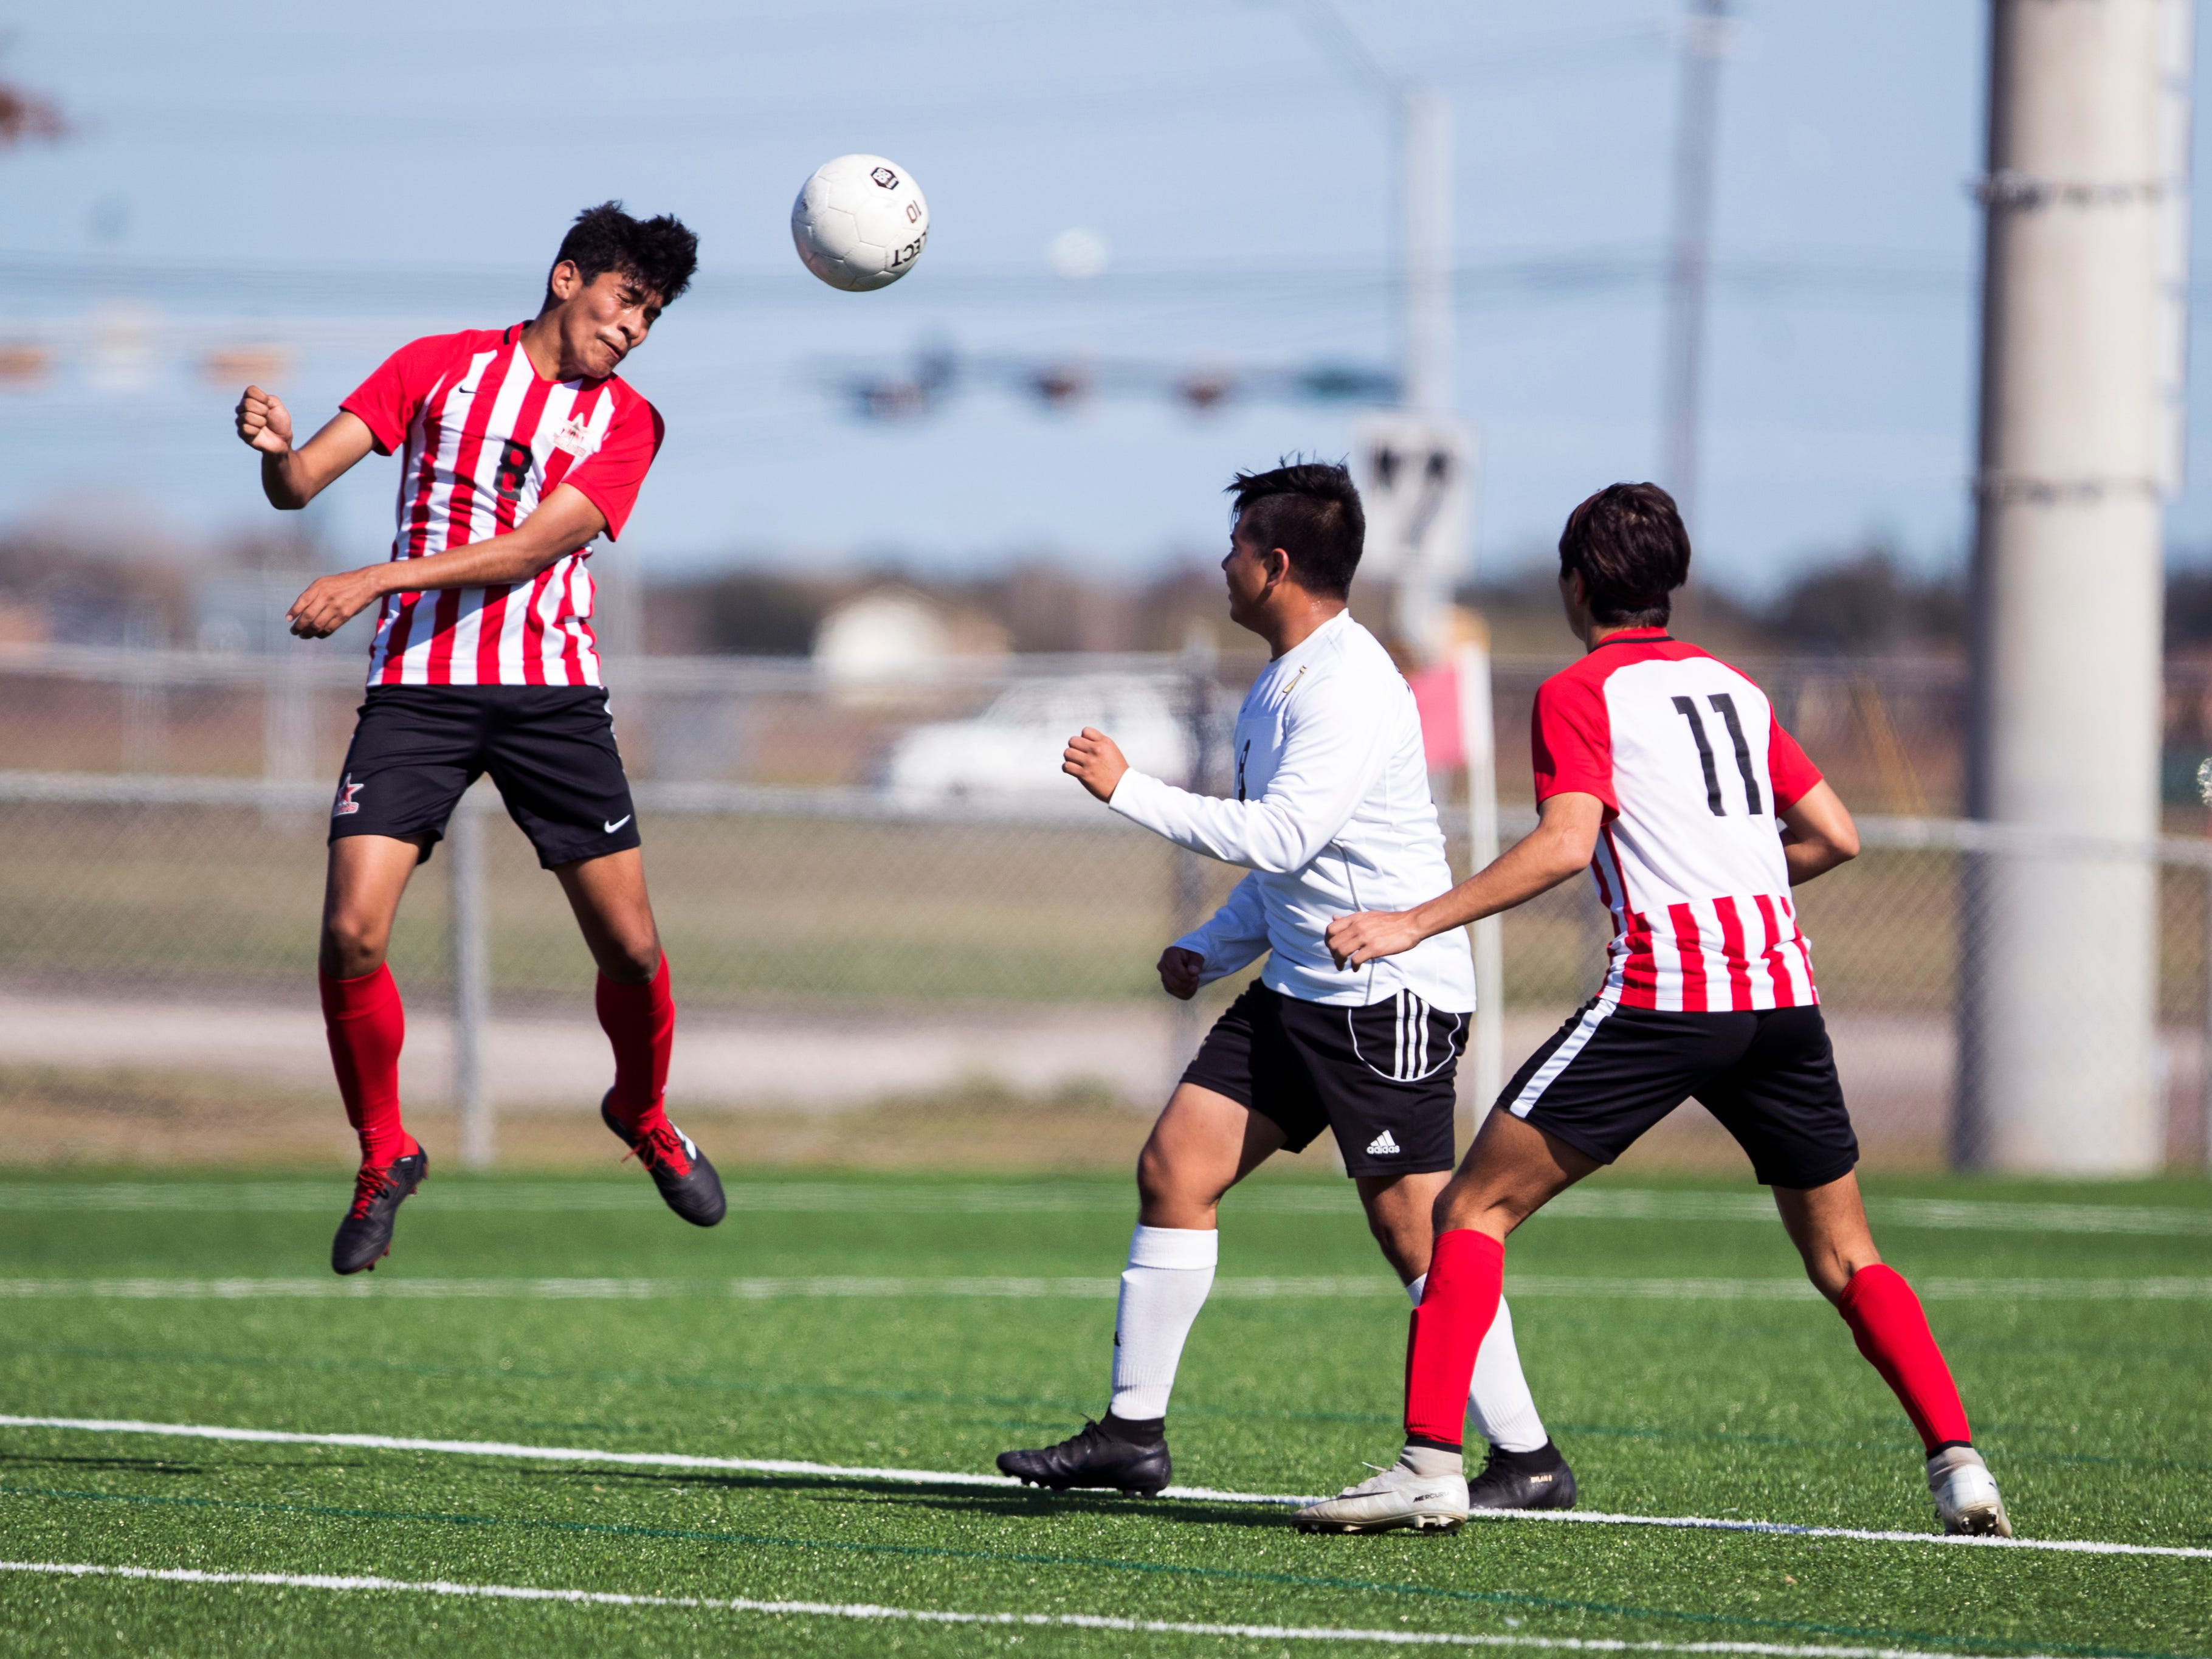 Ray's Jose Rodriguez hits the ball off his head in the game against Kingsville in the Mira's Soccer Tournament at Cabaniss Field on Thursday, January 10, 2019. Ray won the game 2-0.